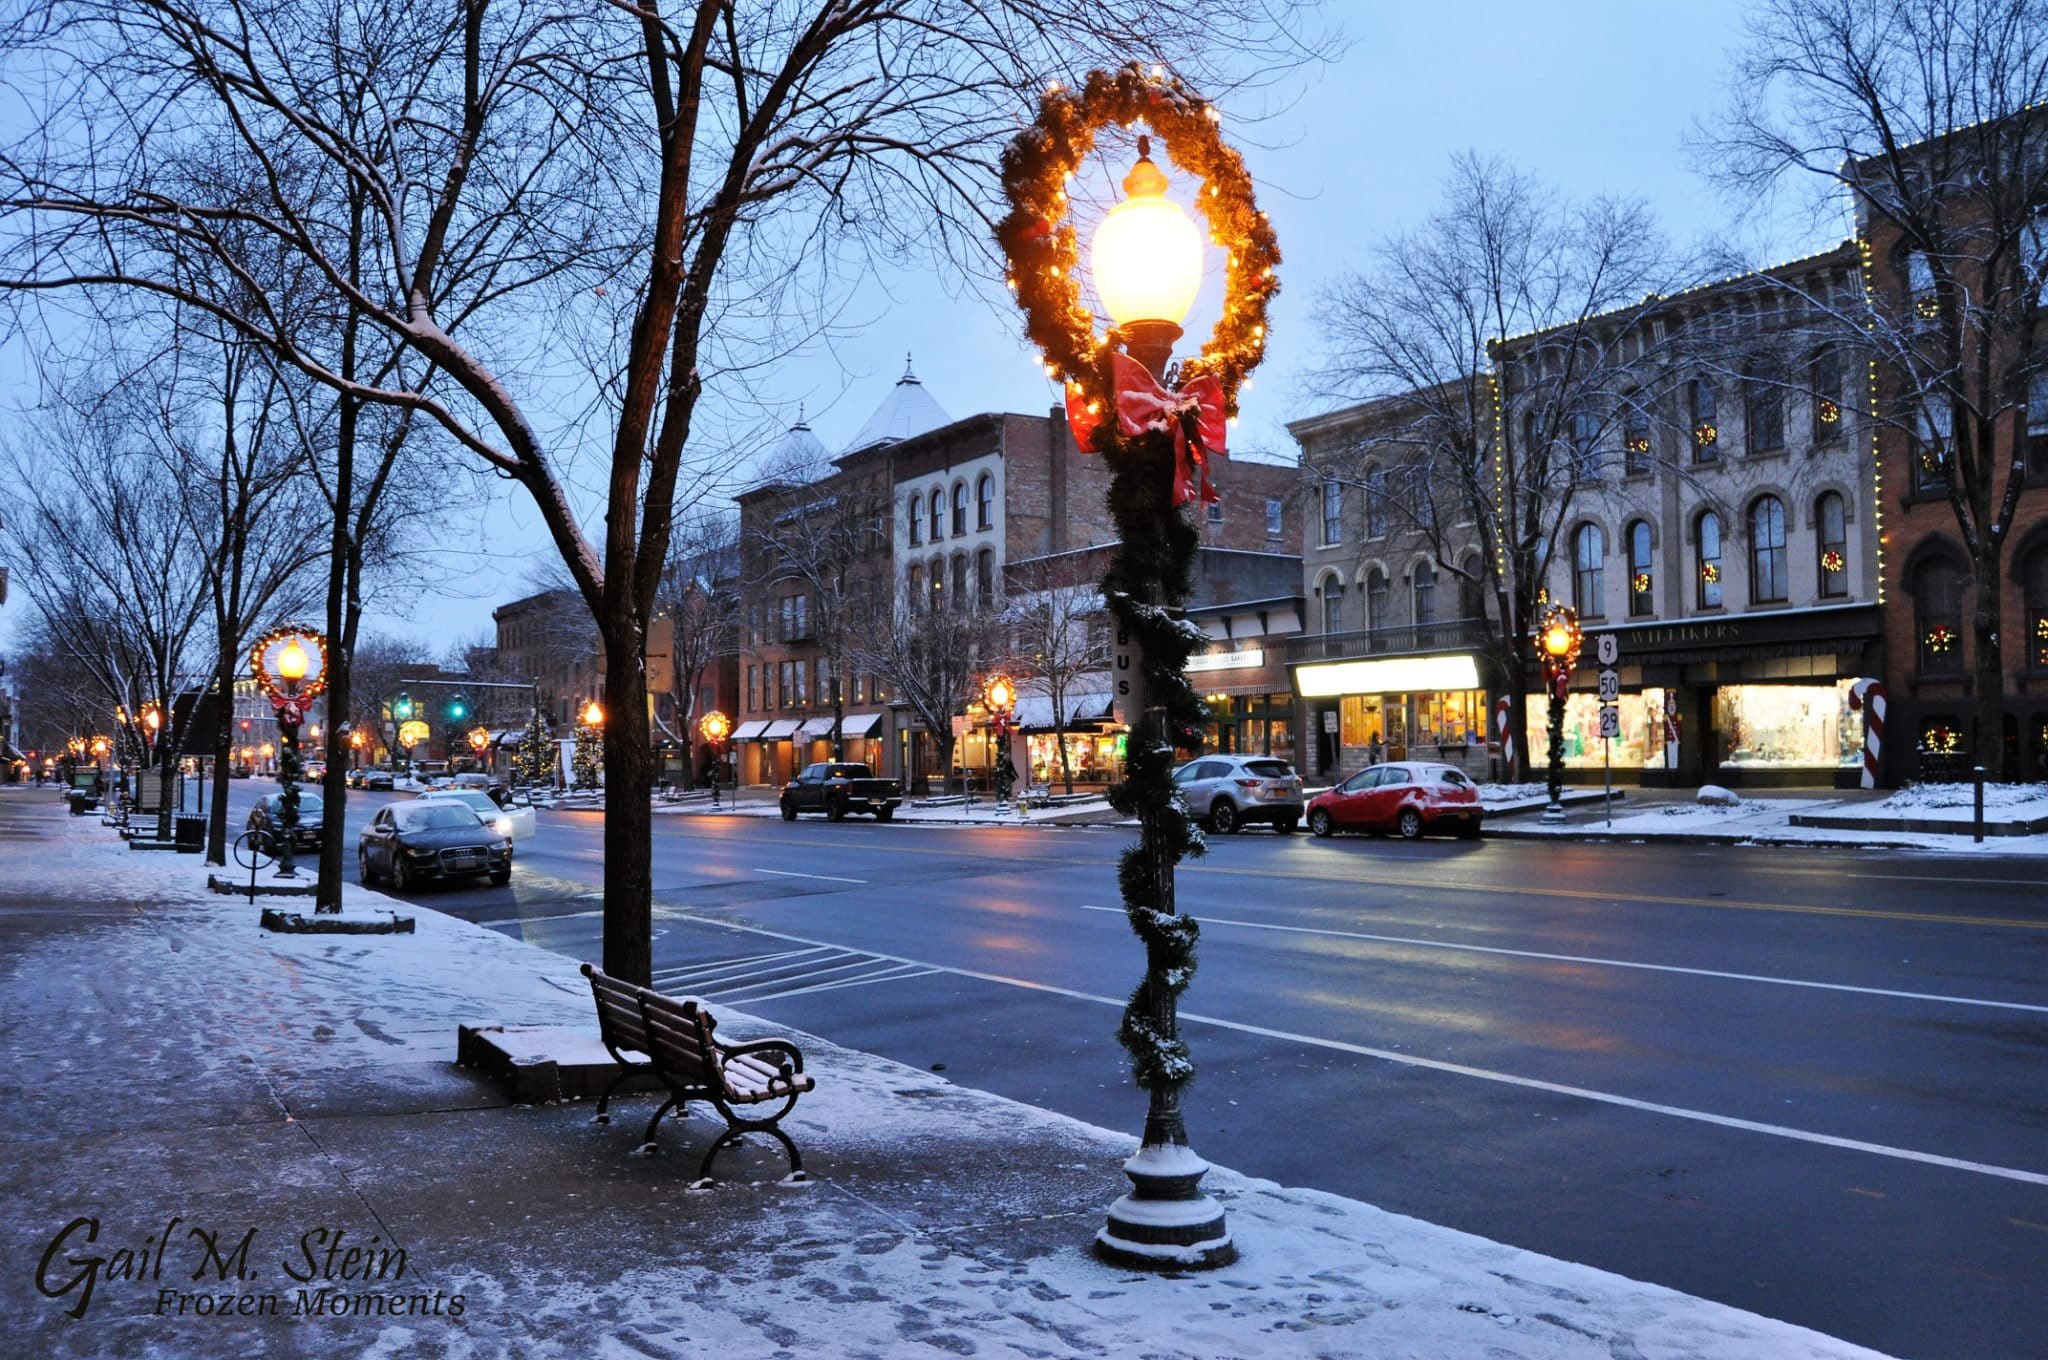 Winter Shops in downtown Saratoga Springs